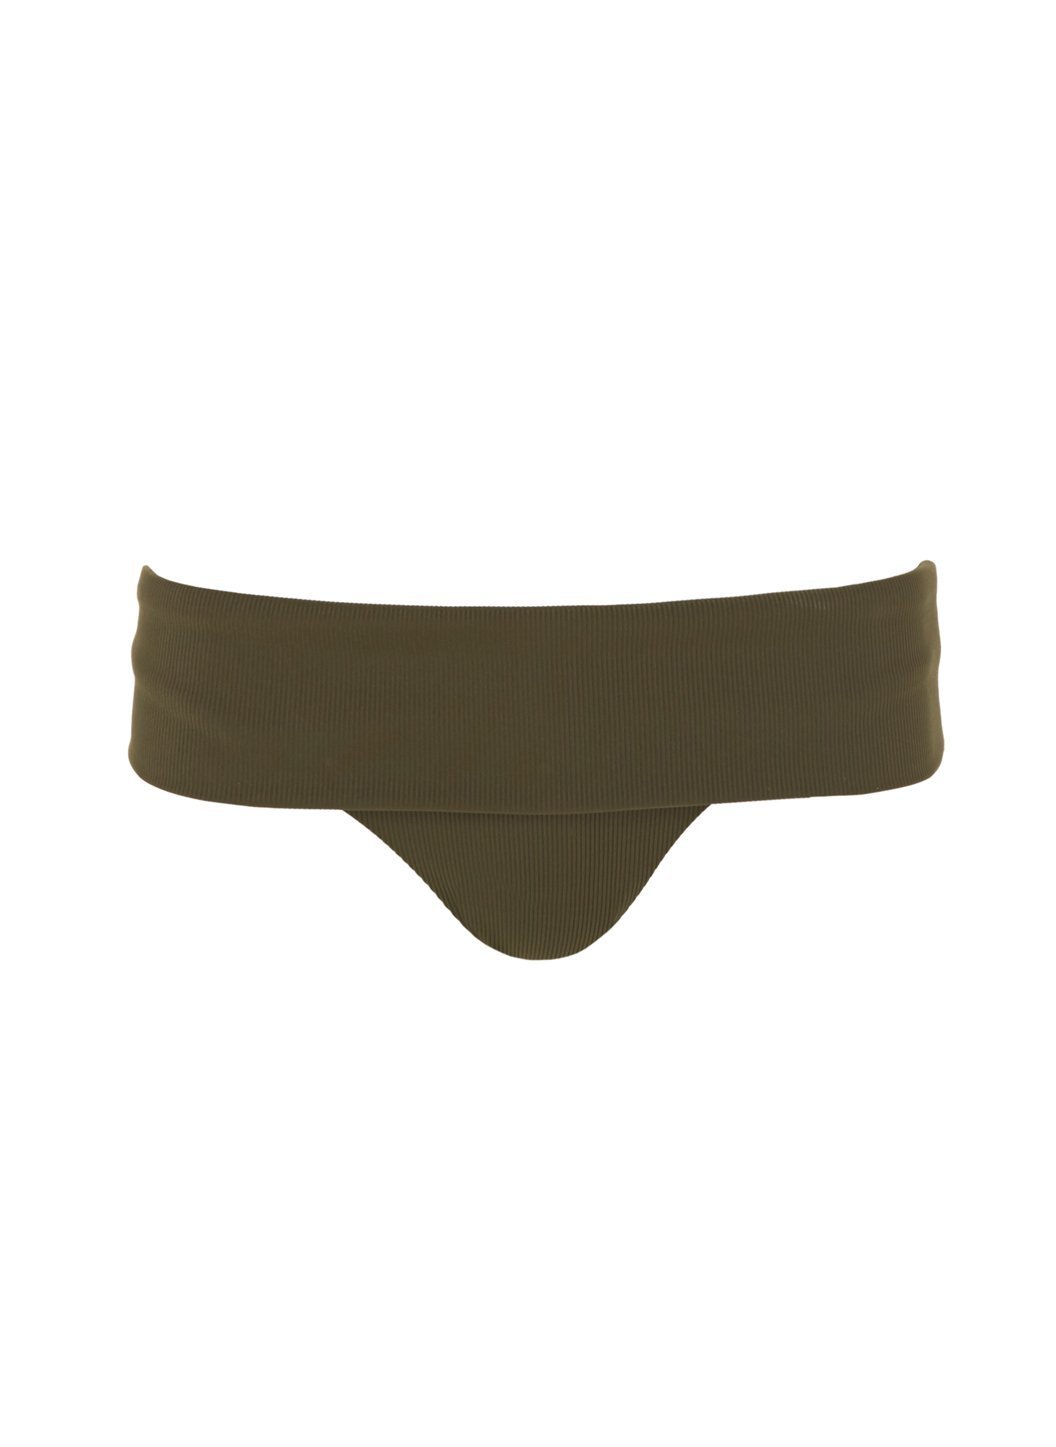 brussels-olive-ribbed-bikini-bottom - Cut-Out